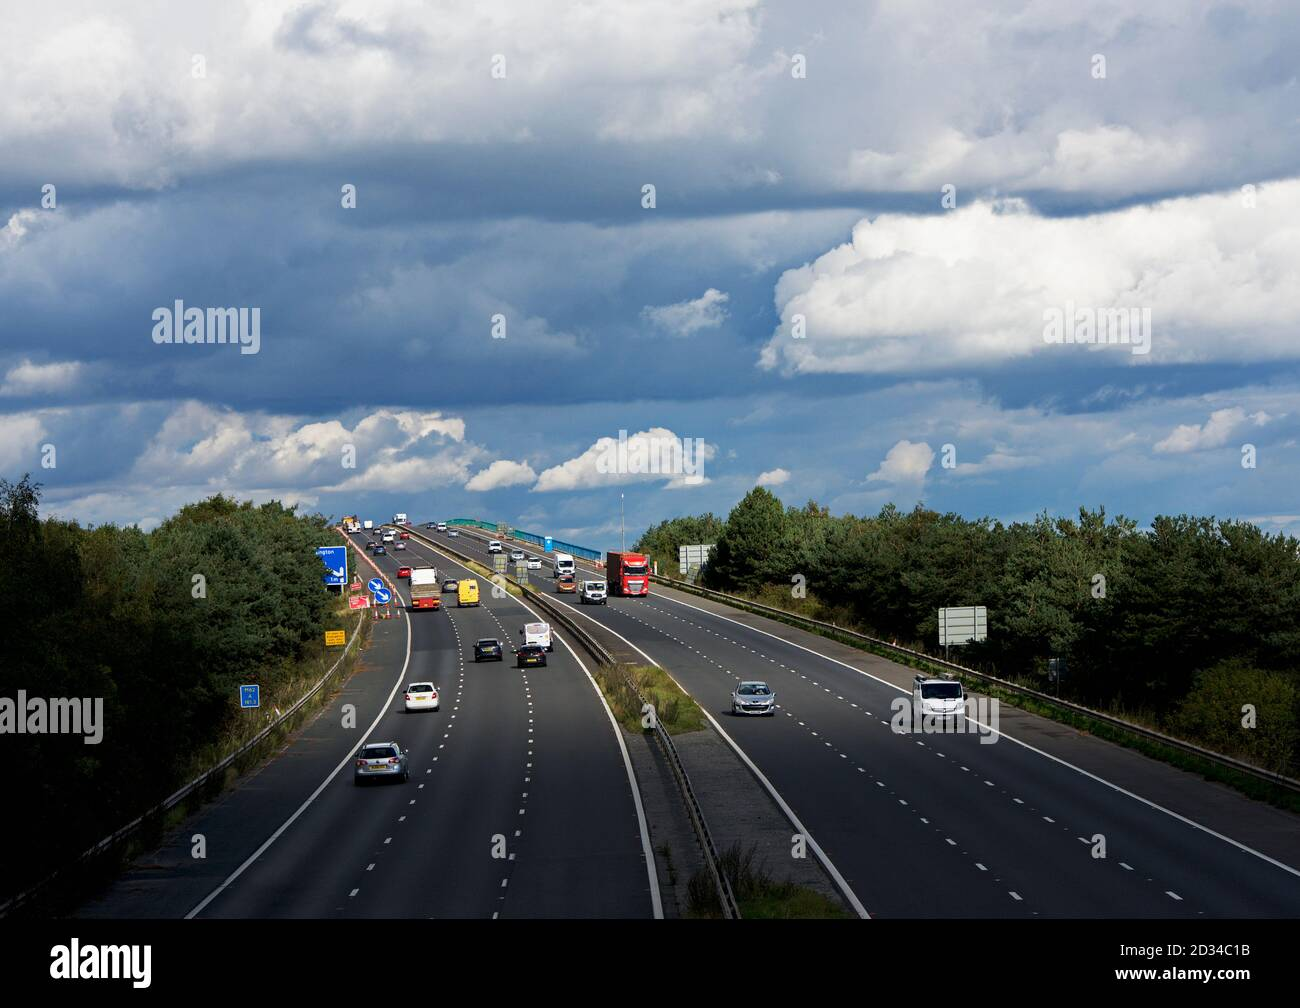 traffic-on-the-m62-motorway-as-it-crosses-the-river-ouse-on-the-ouse-bridge-between-howden-and-goole-east-yorkshire-england-uk-2D34C1B.jpg